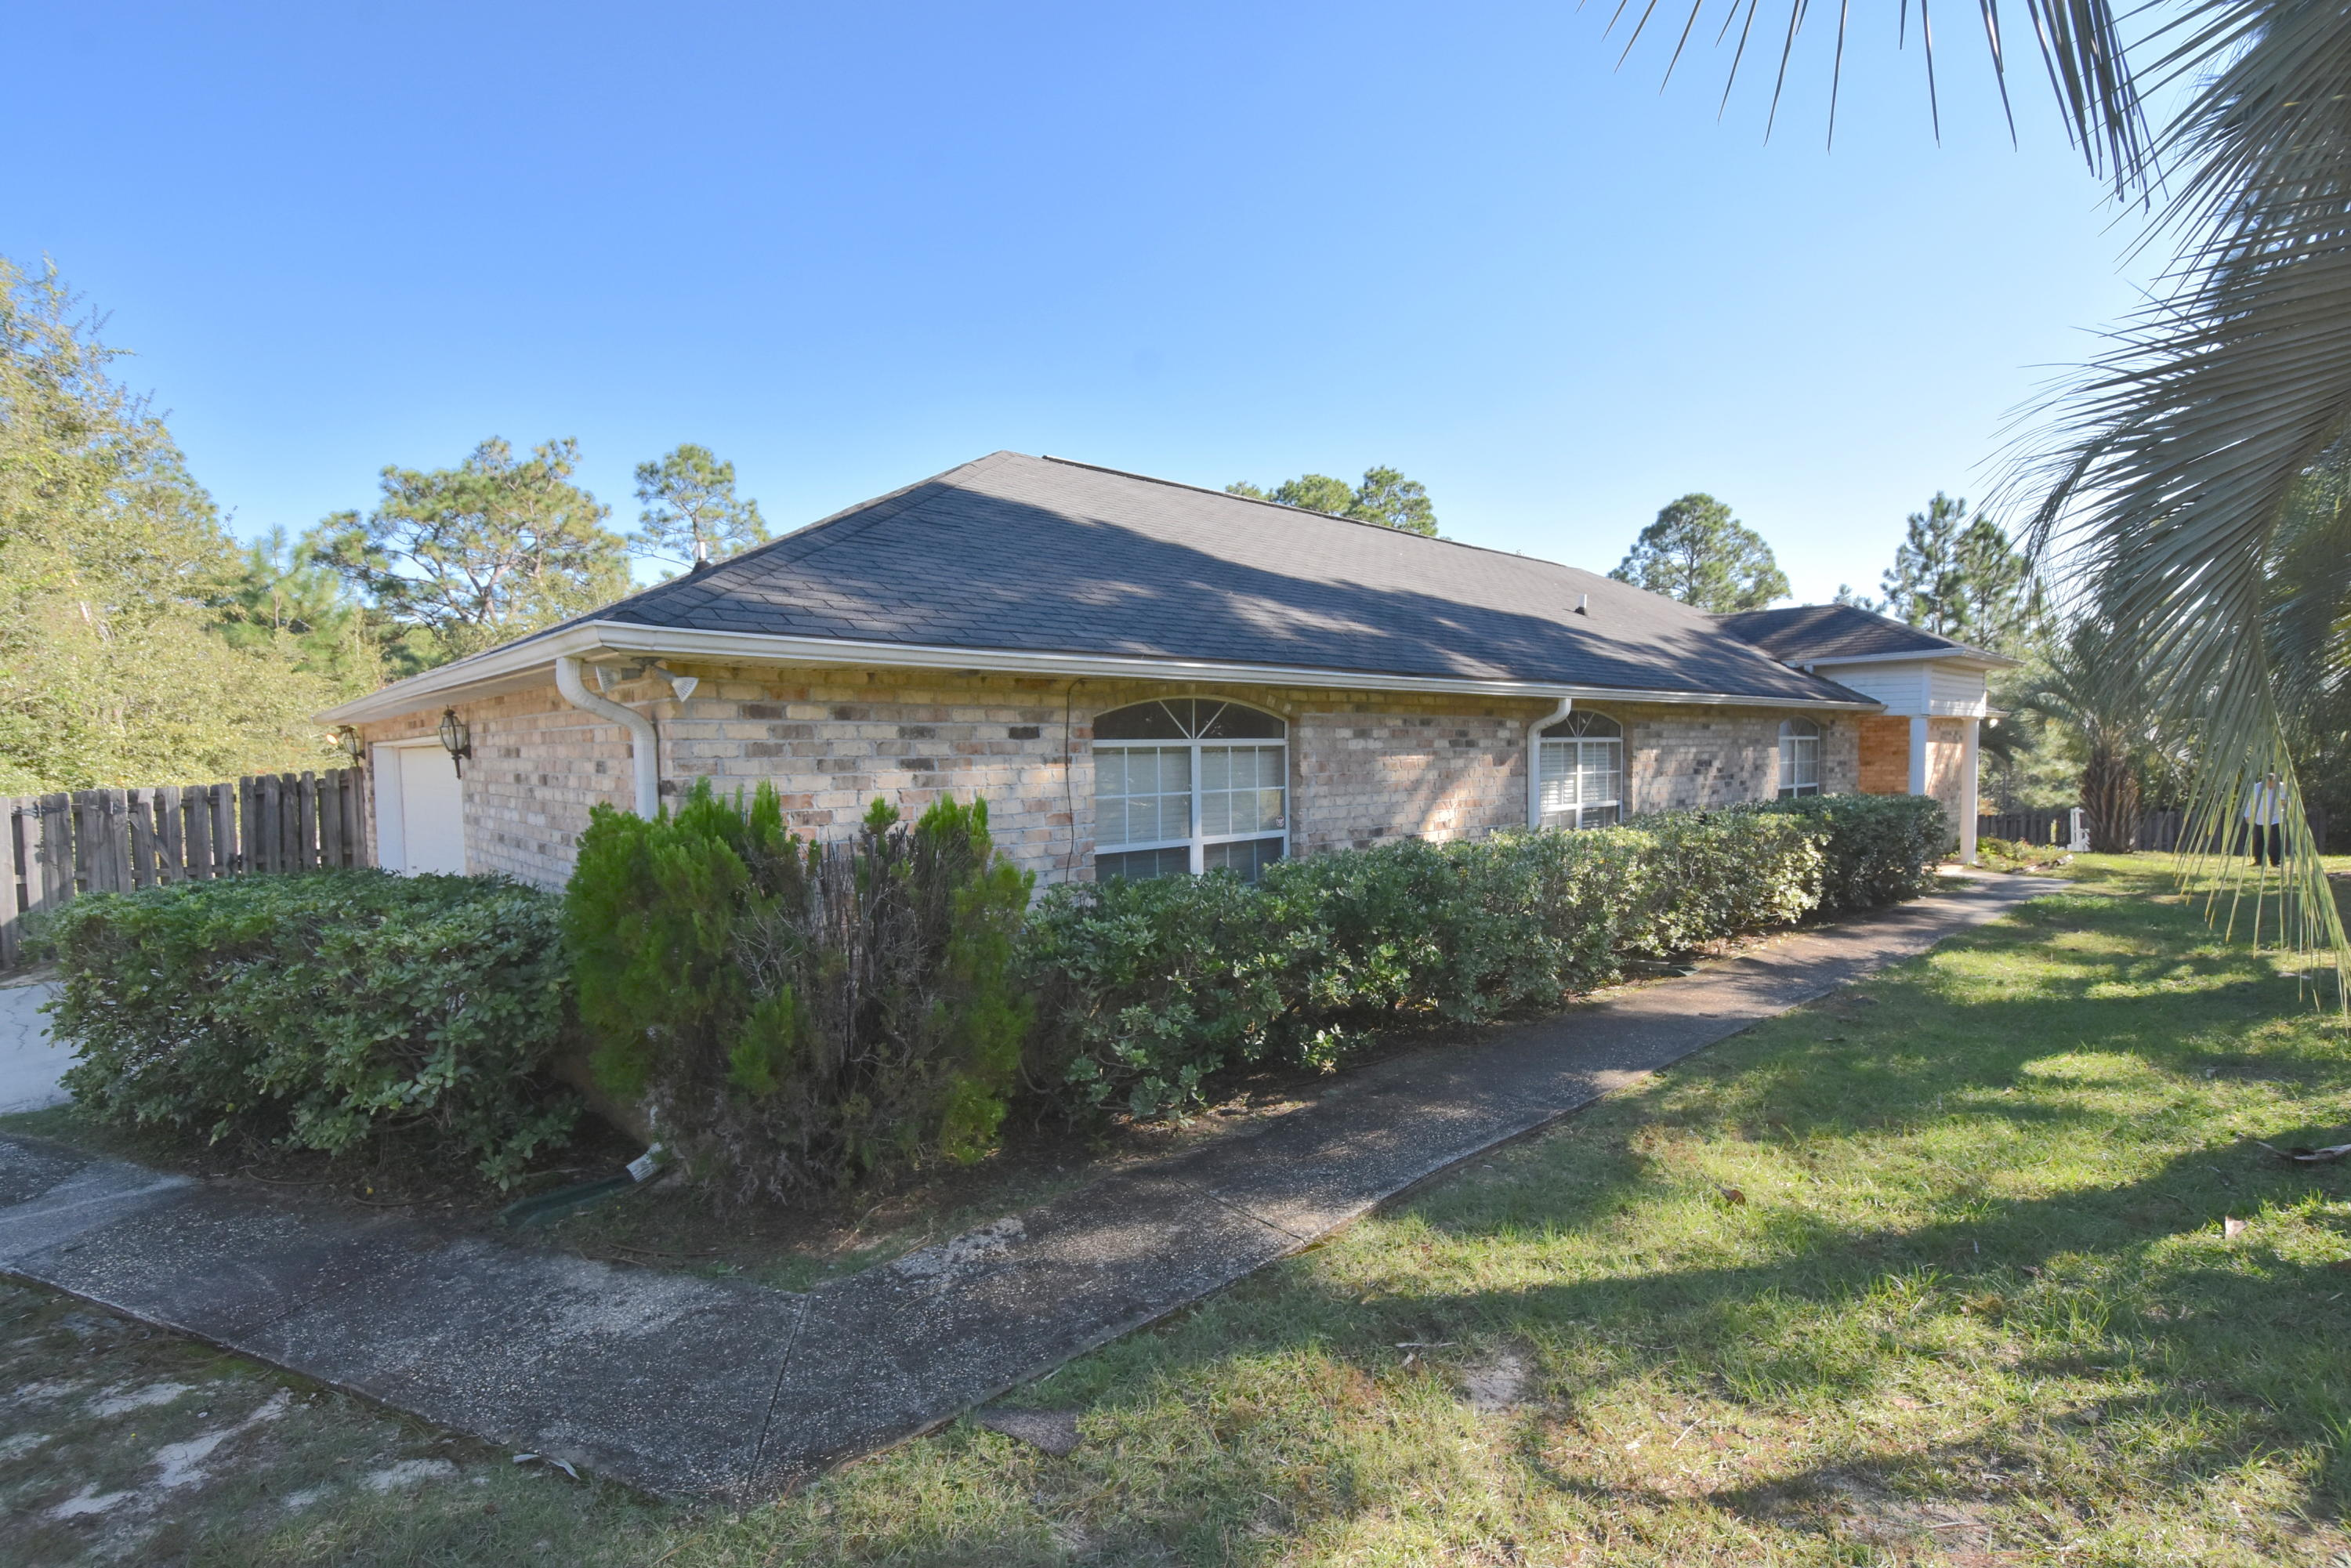 Photo of home for sale at 116 Tranquility, Crestview FL